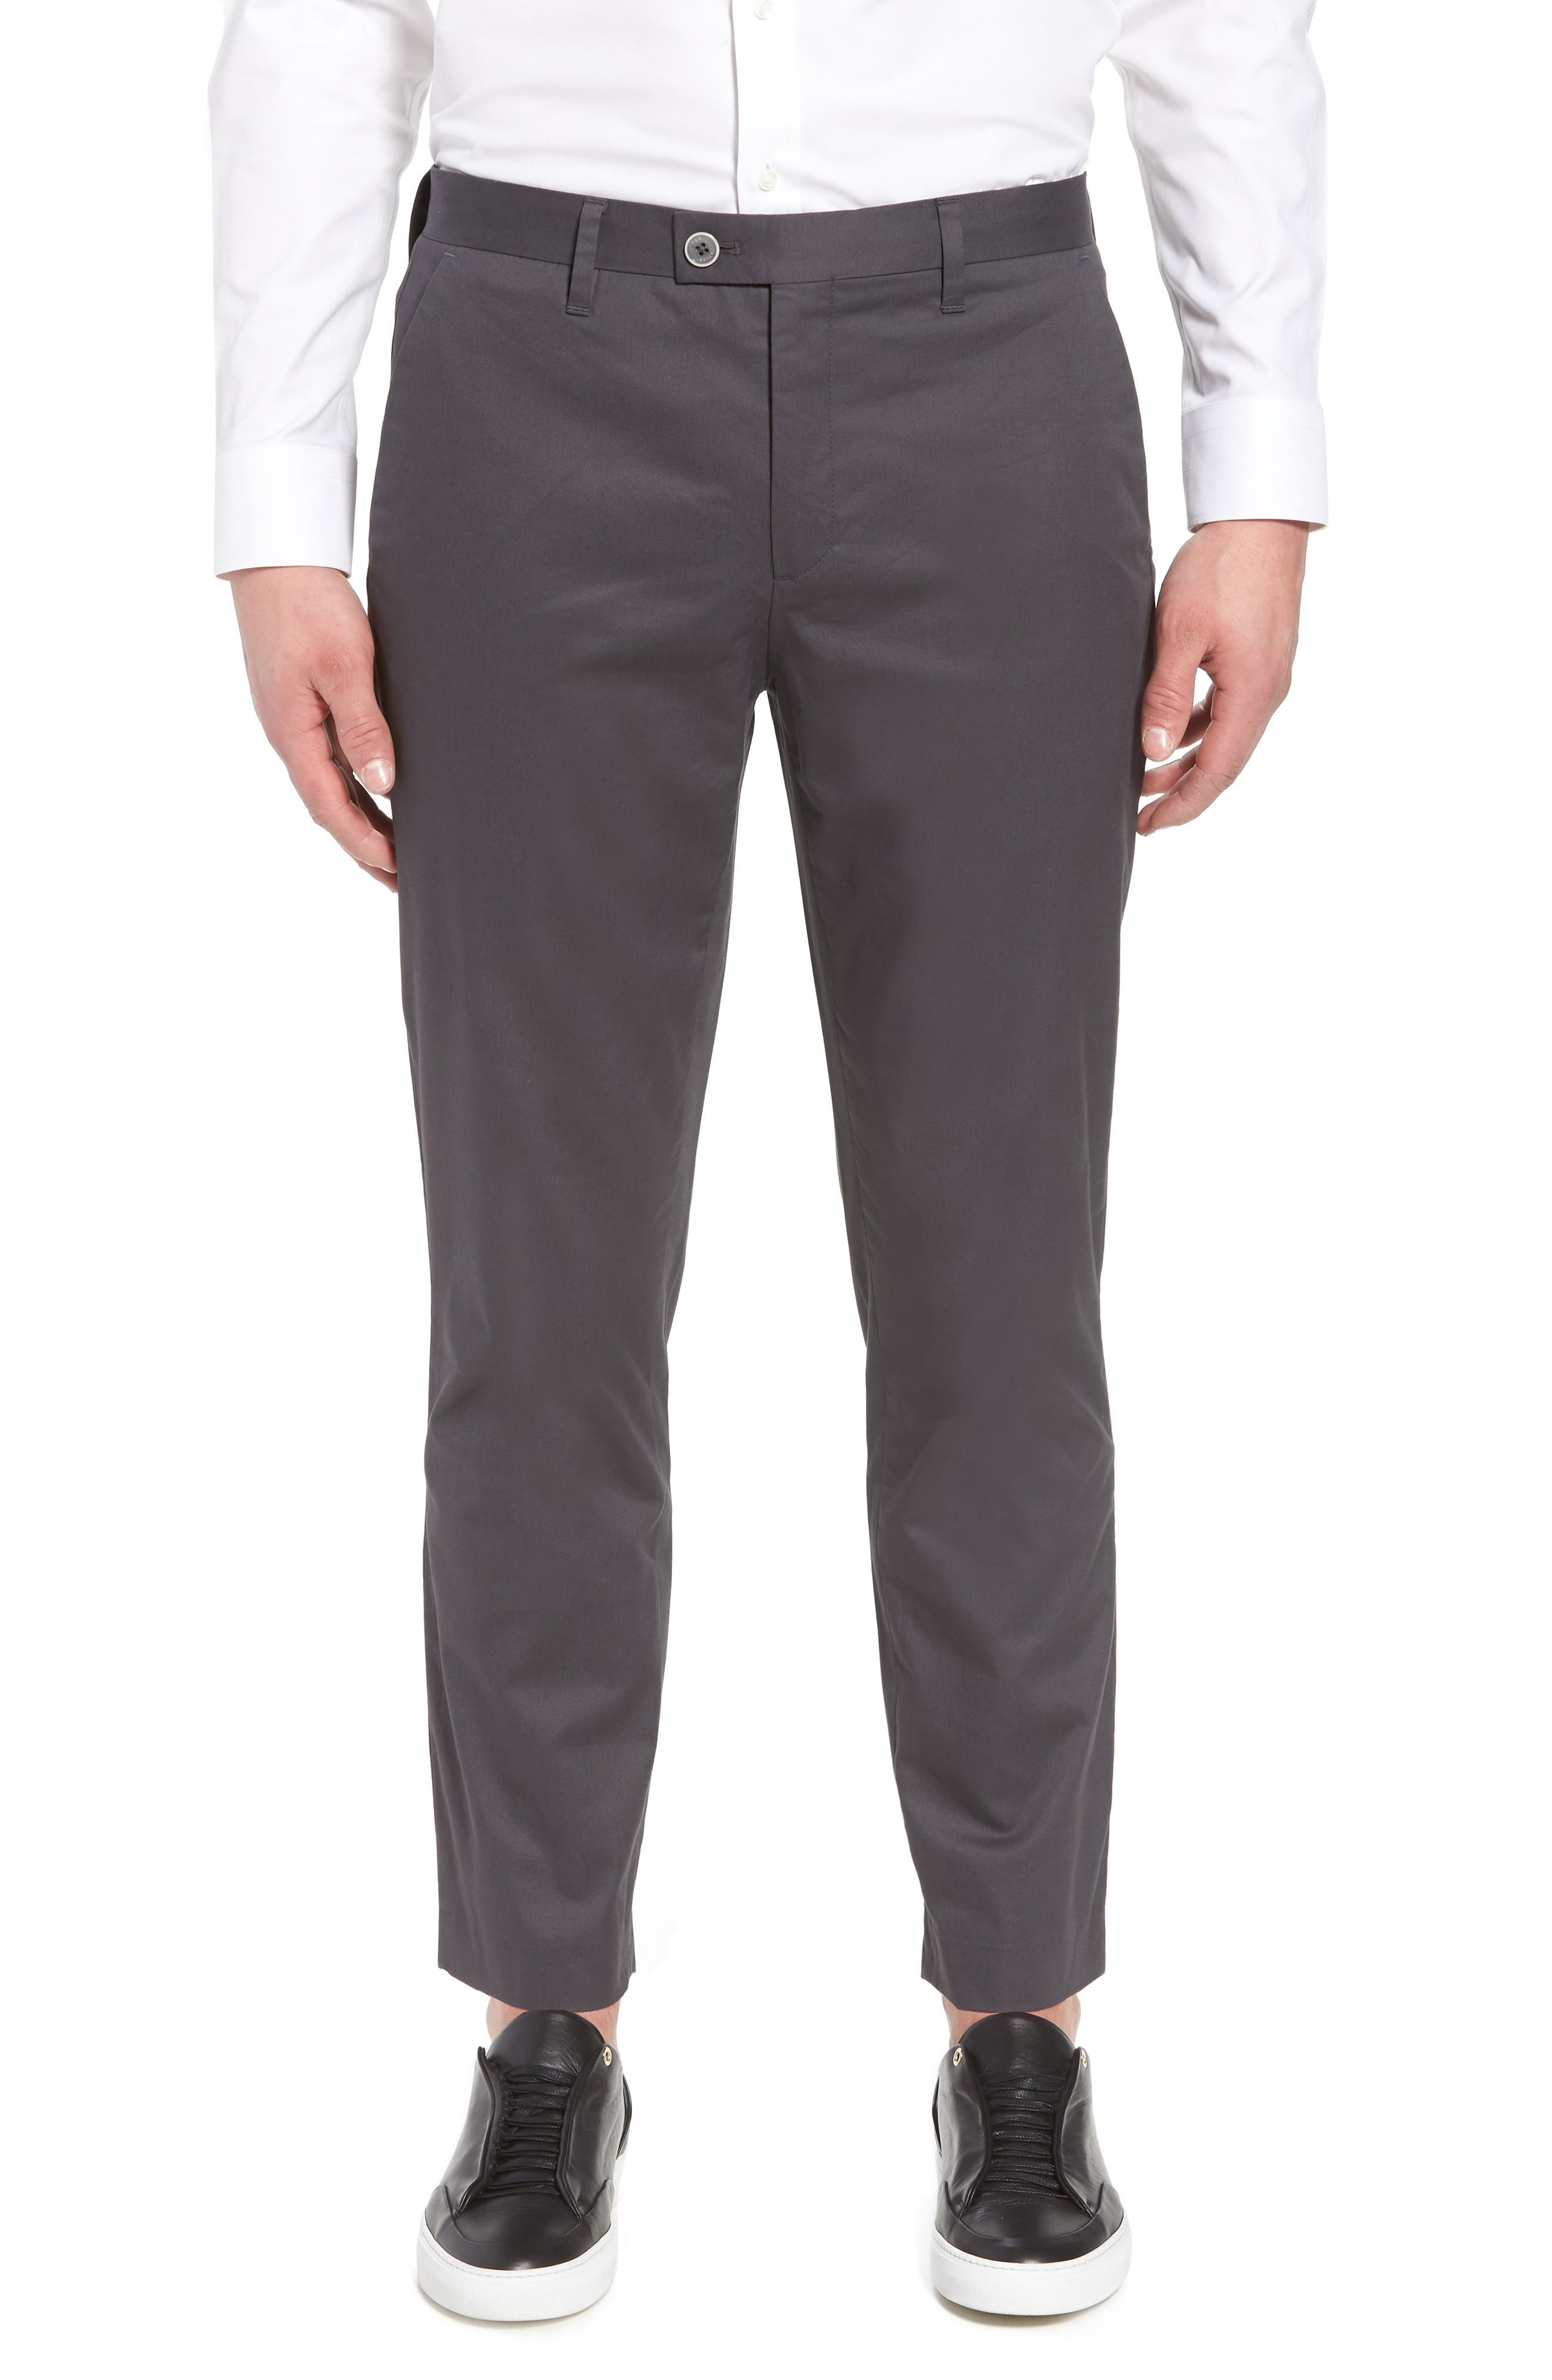 Cliftro Flat Front Stretch Cotton Pants,                             Main thumbnail 1, color,                             Light Grey